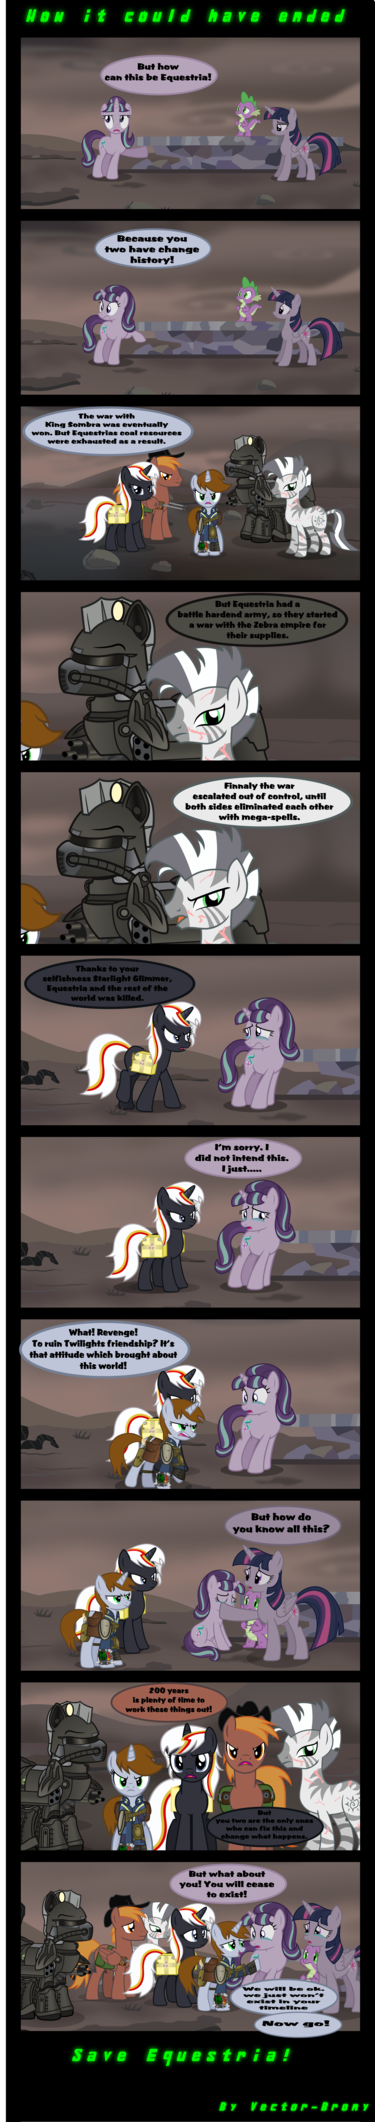 how it should have ended by vector brony